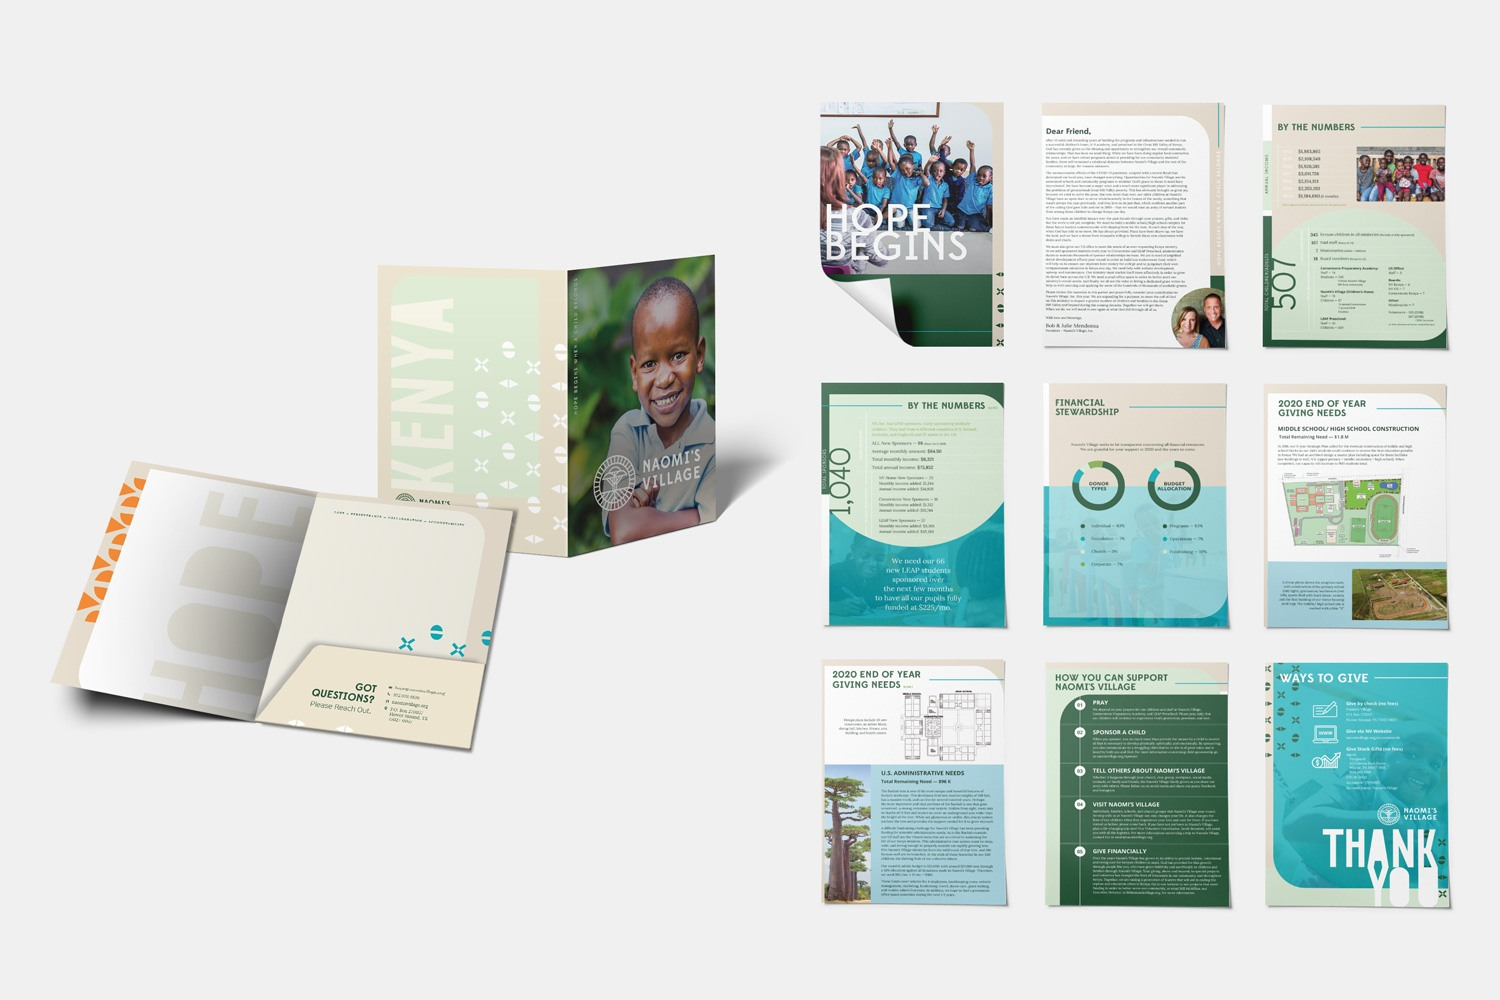 Nonprofit capital campaign case statement materials, folder and document pages design by Abstract Union